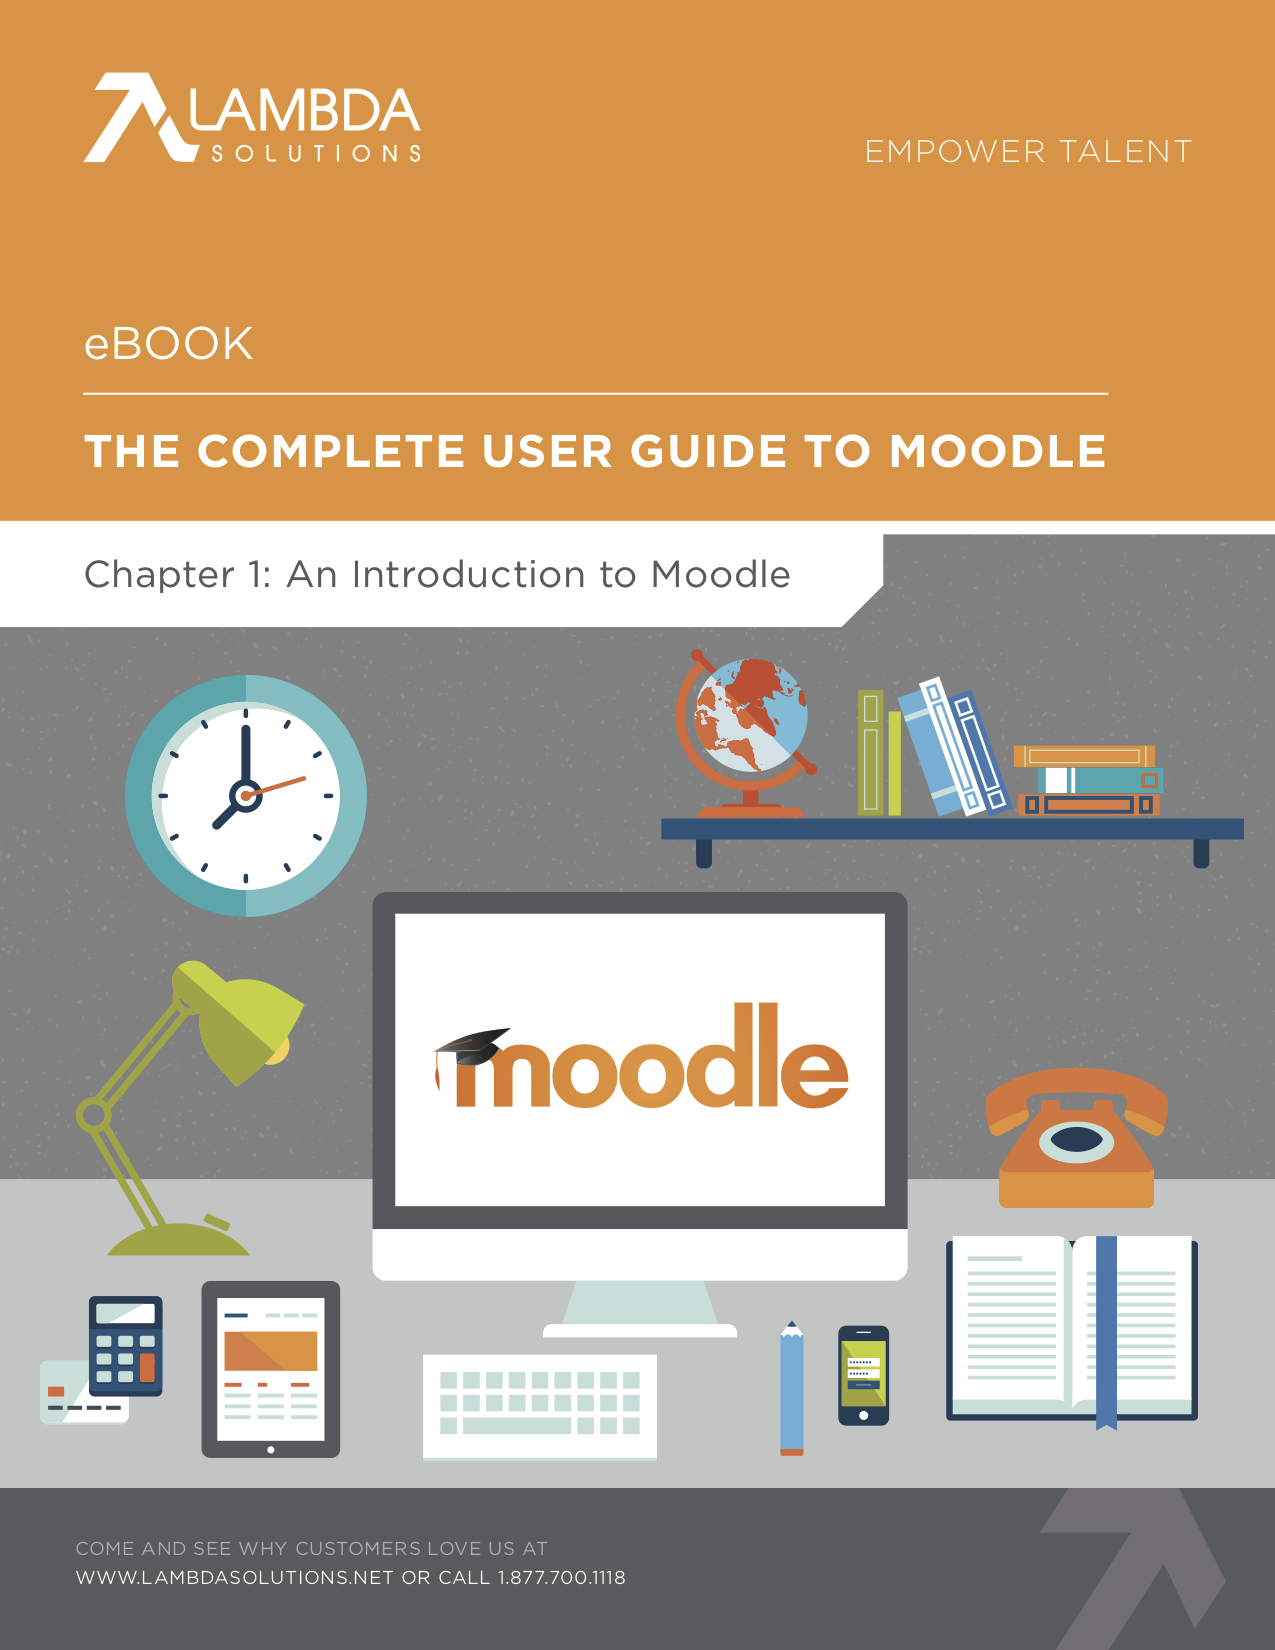 Lambda Solutions_Ebook-Moodle User Guide-Chapter1_06 March 2019